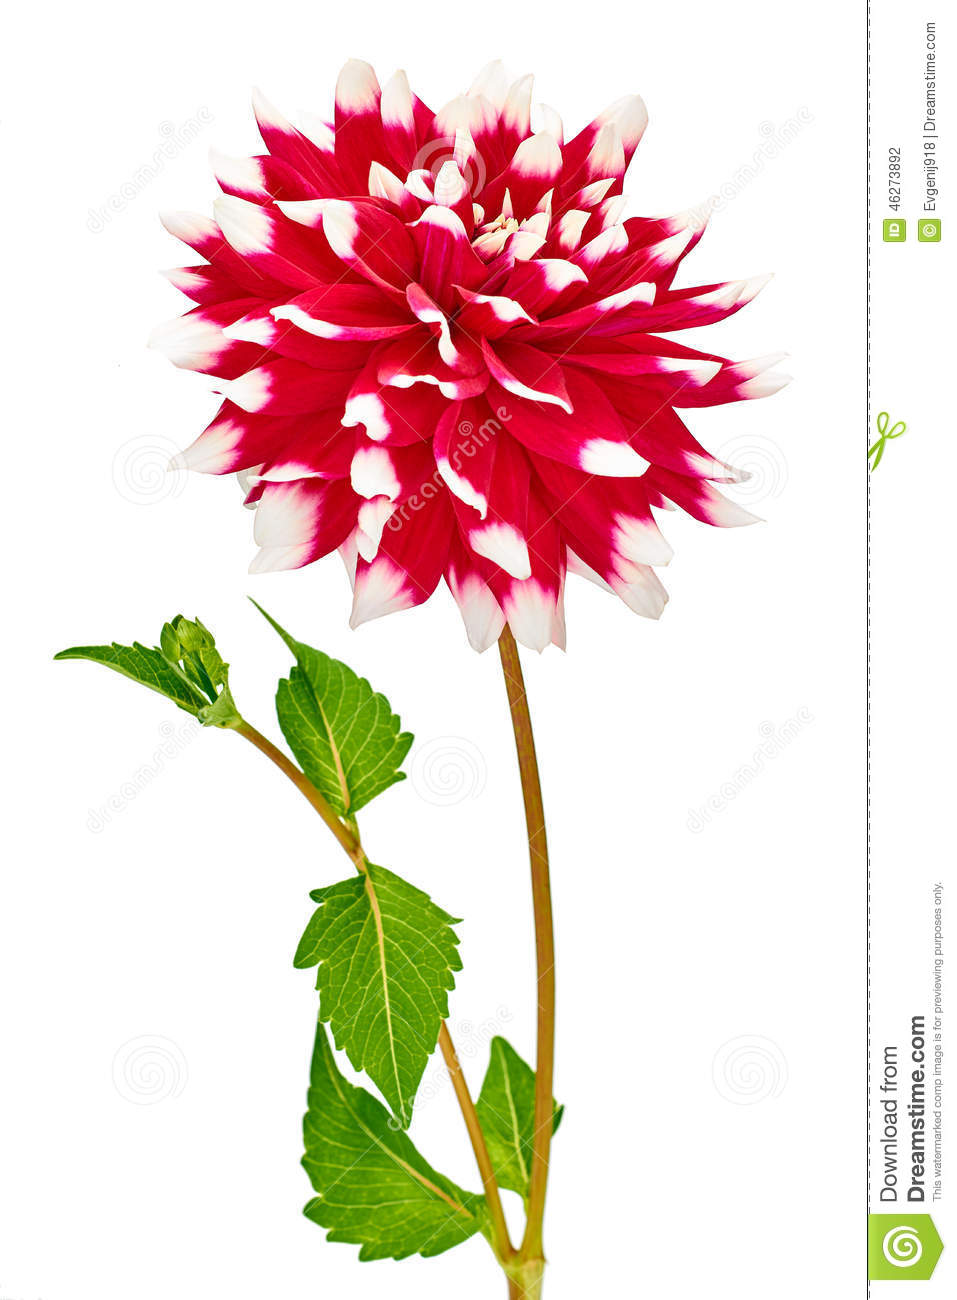 Dahlia Red, White Colored Flower With Green Leaf Stock Photo - Image ...